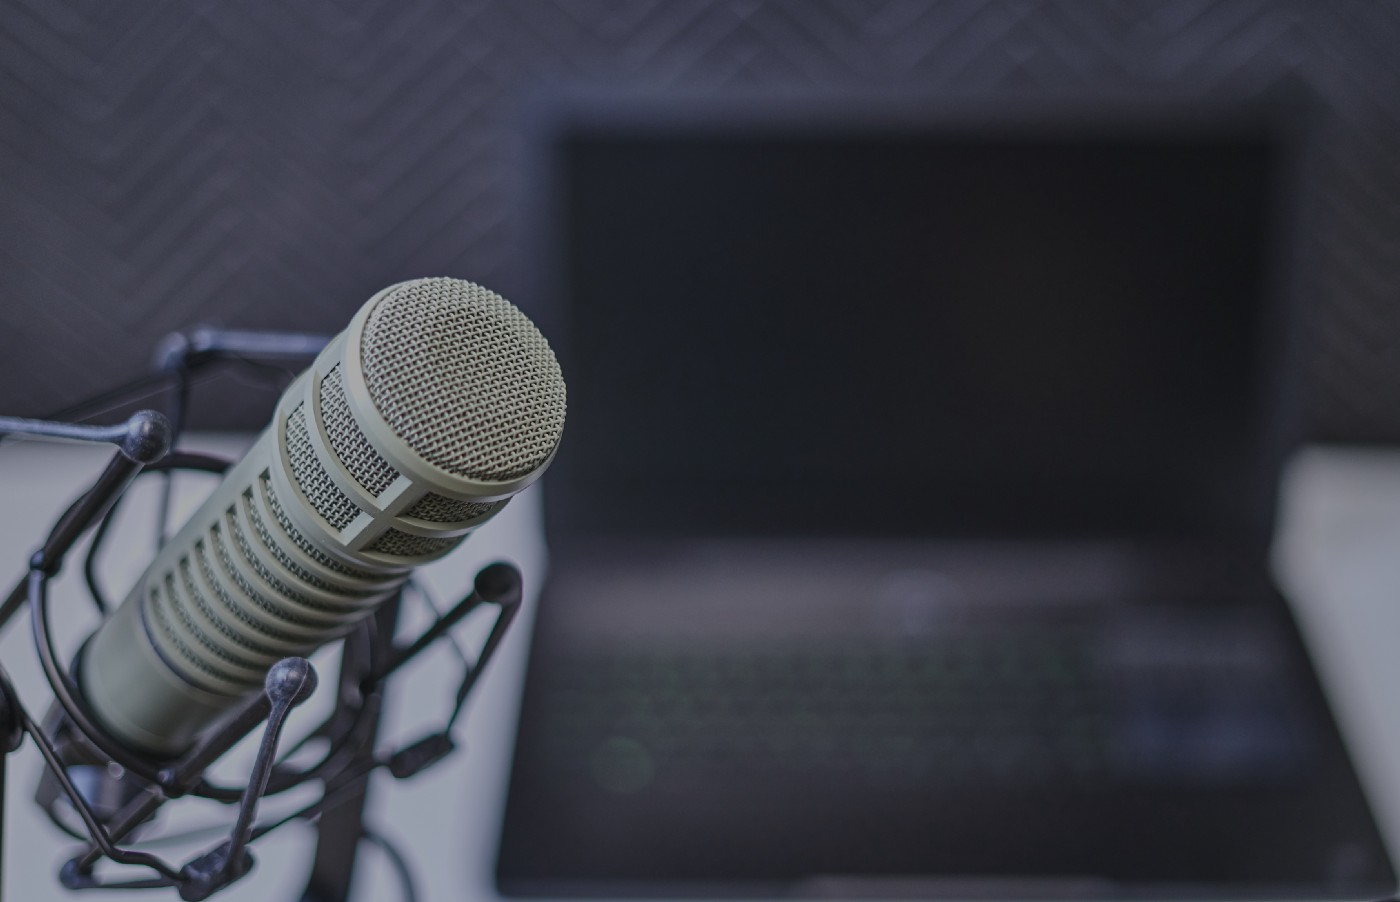 Microphone in front of an open laptop